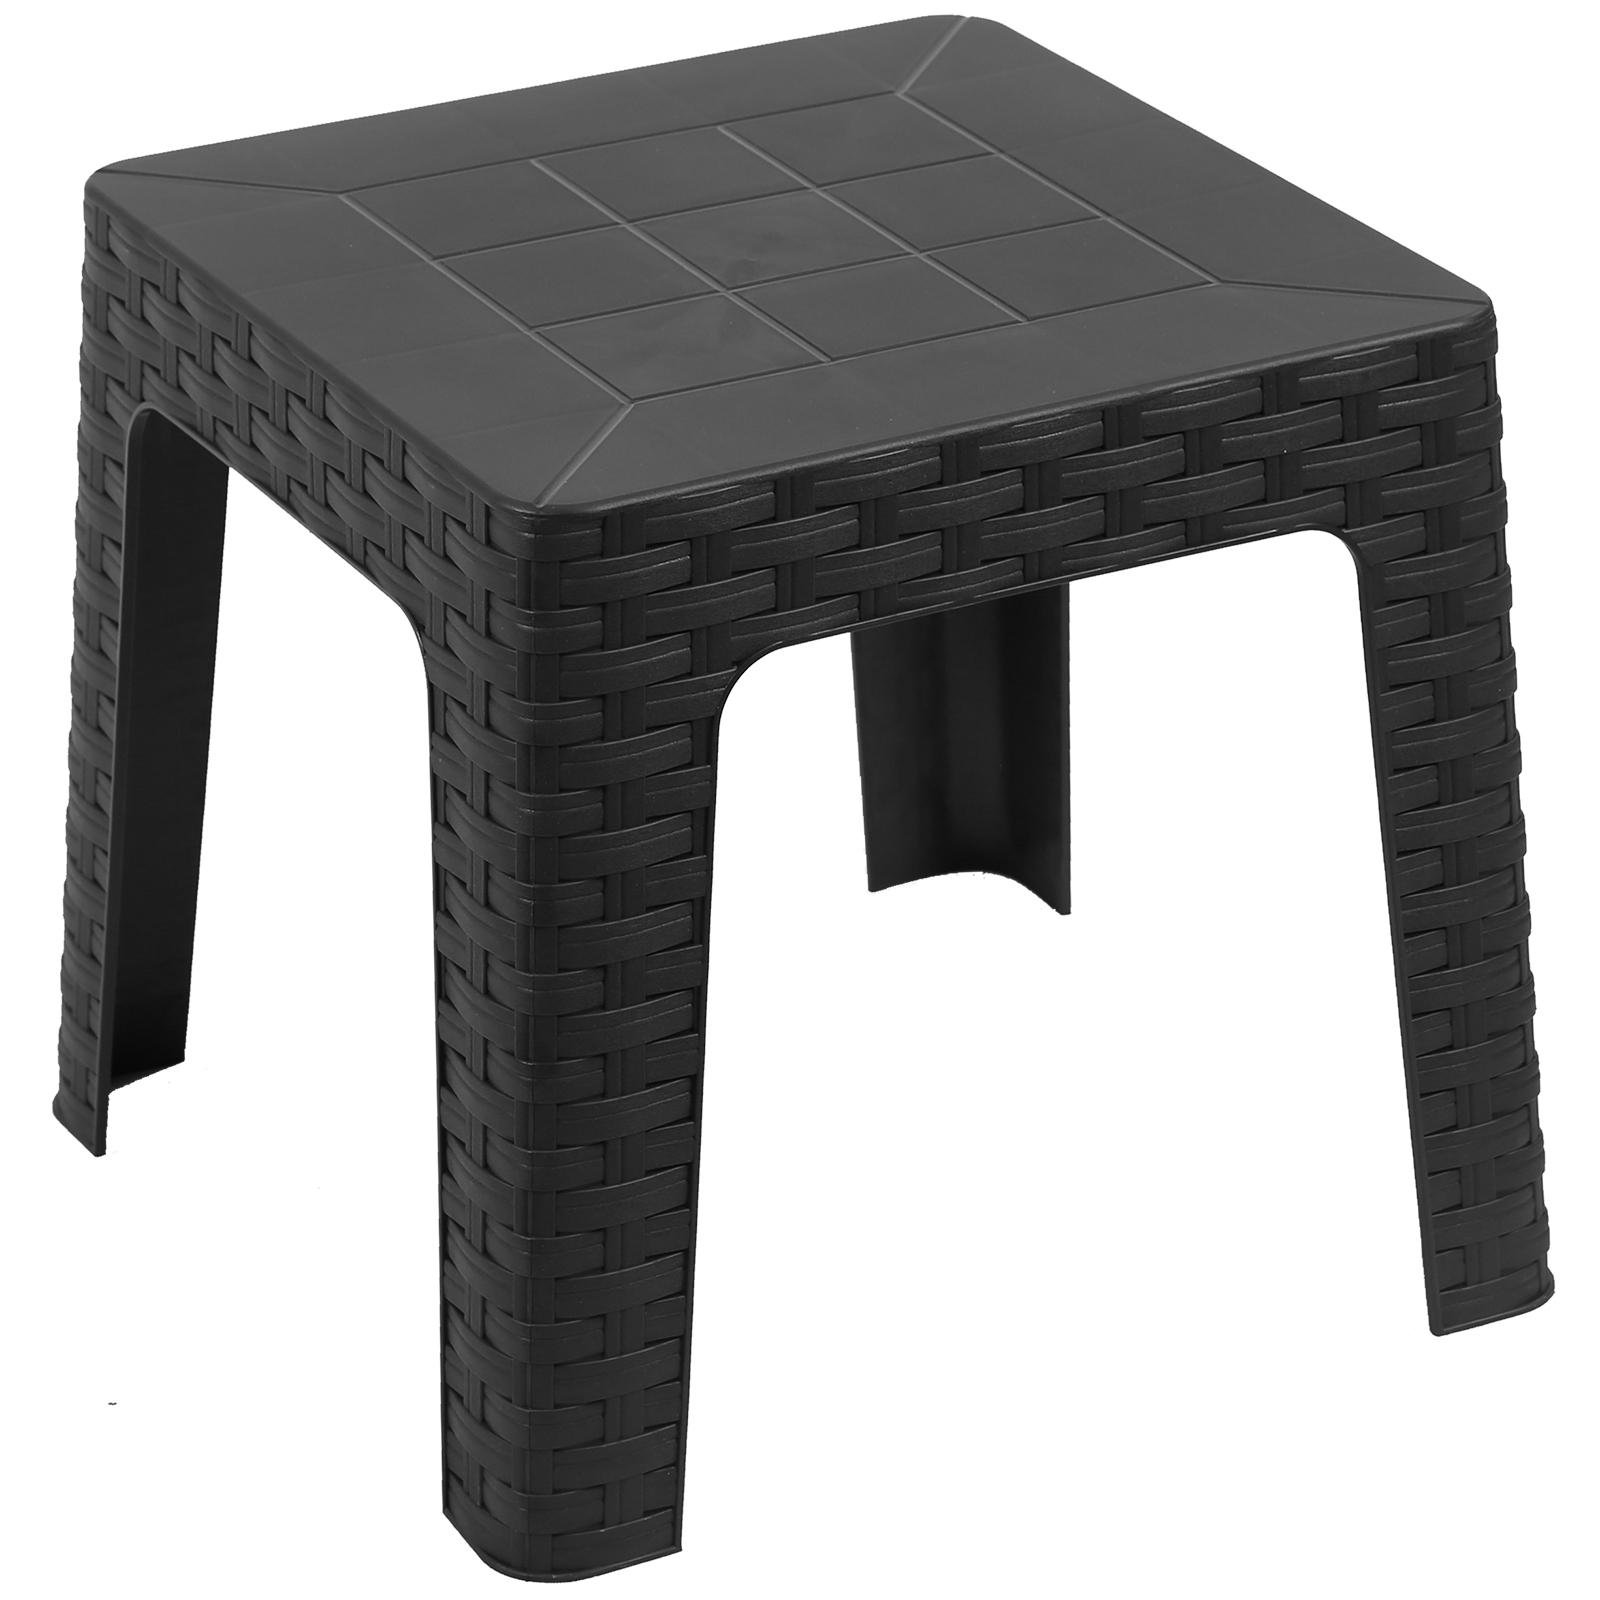 Details about Sun Lounger Side Coffee Table Grey Plastic Rattan Outdoor  Garden Patio Furniture